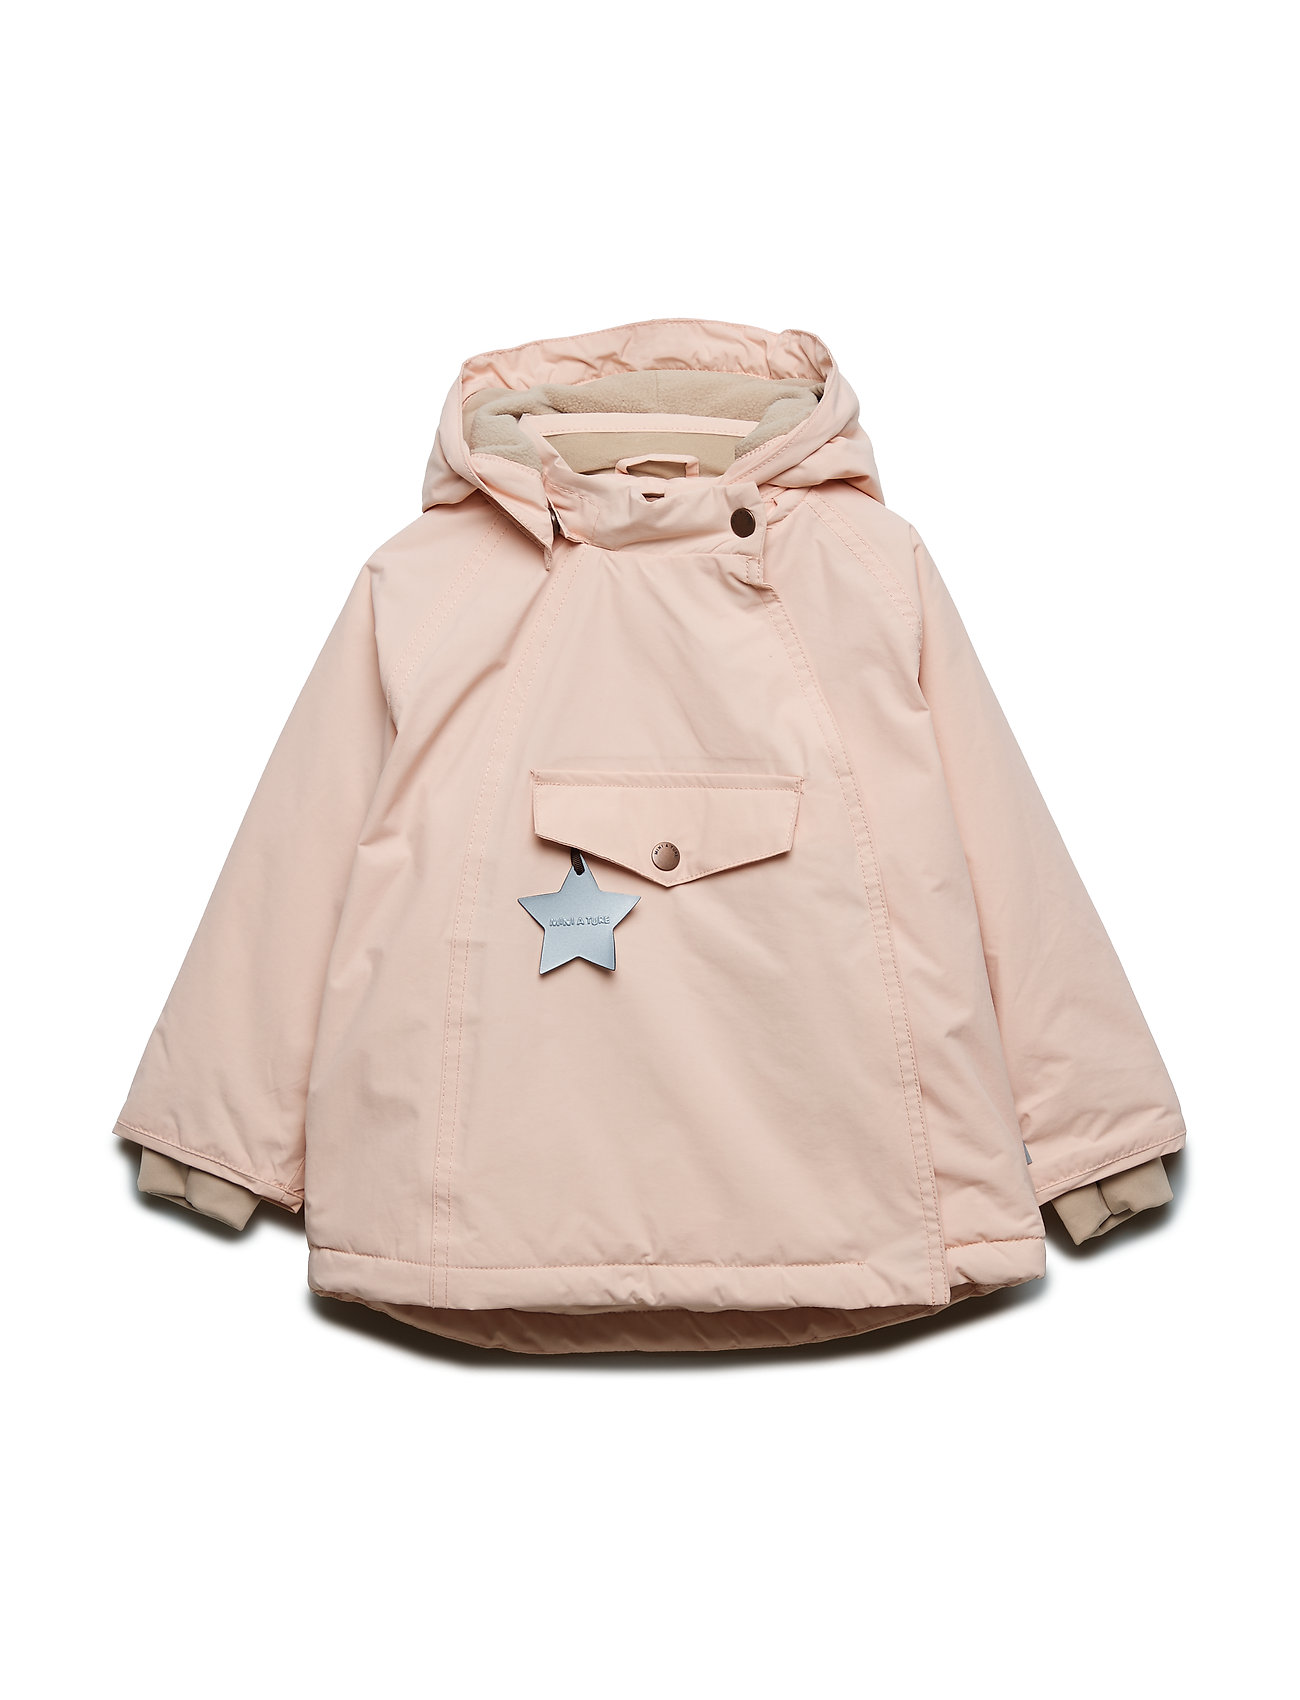 Mini A Ture Wang Jacket, M - KEEN ROSE